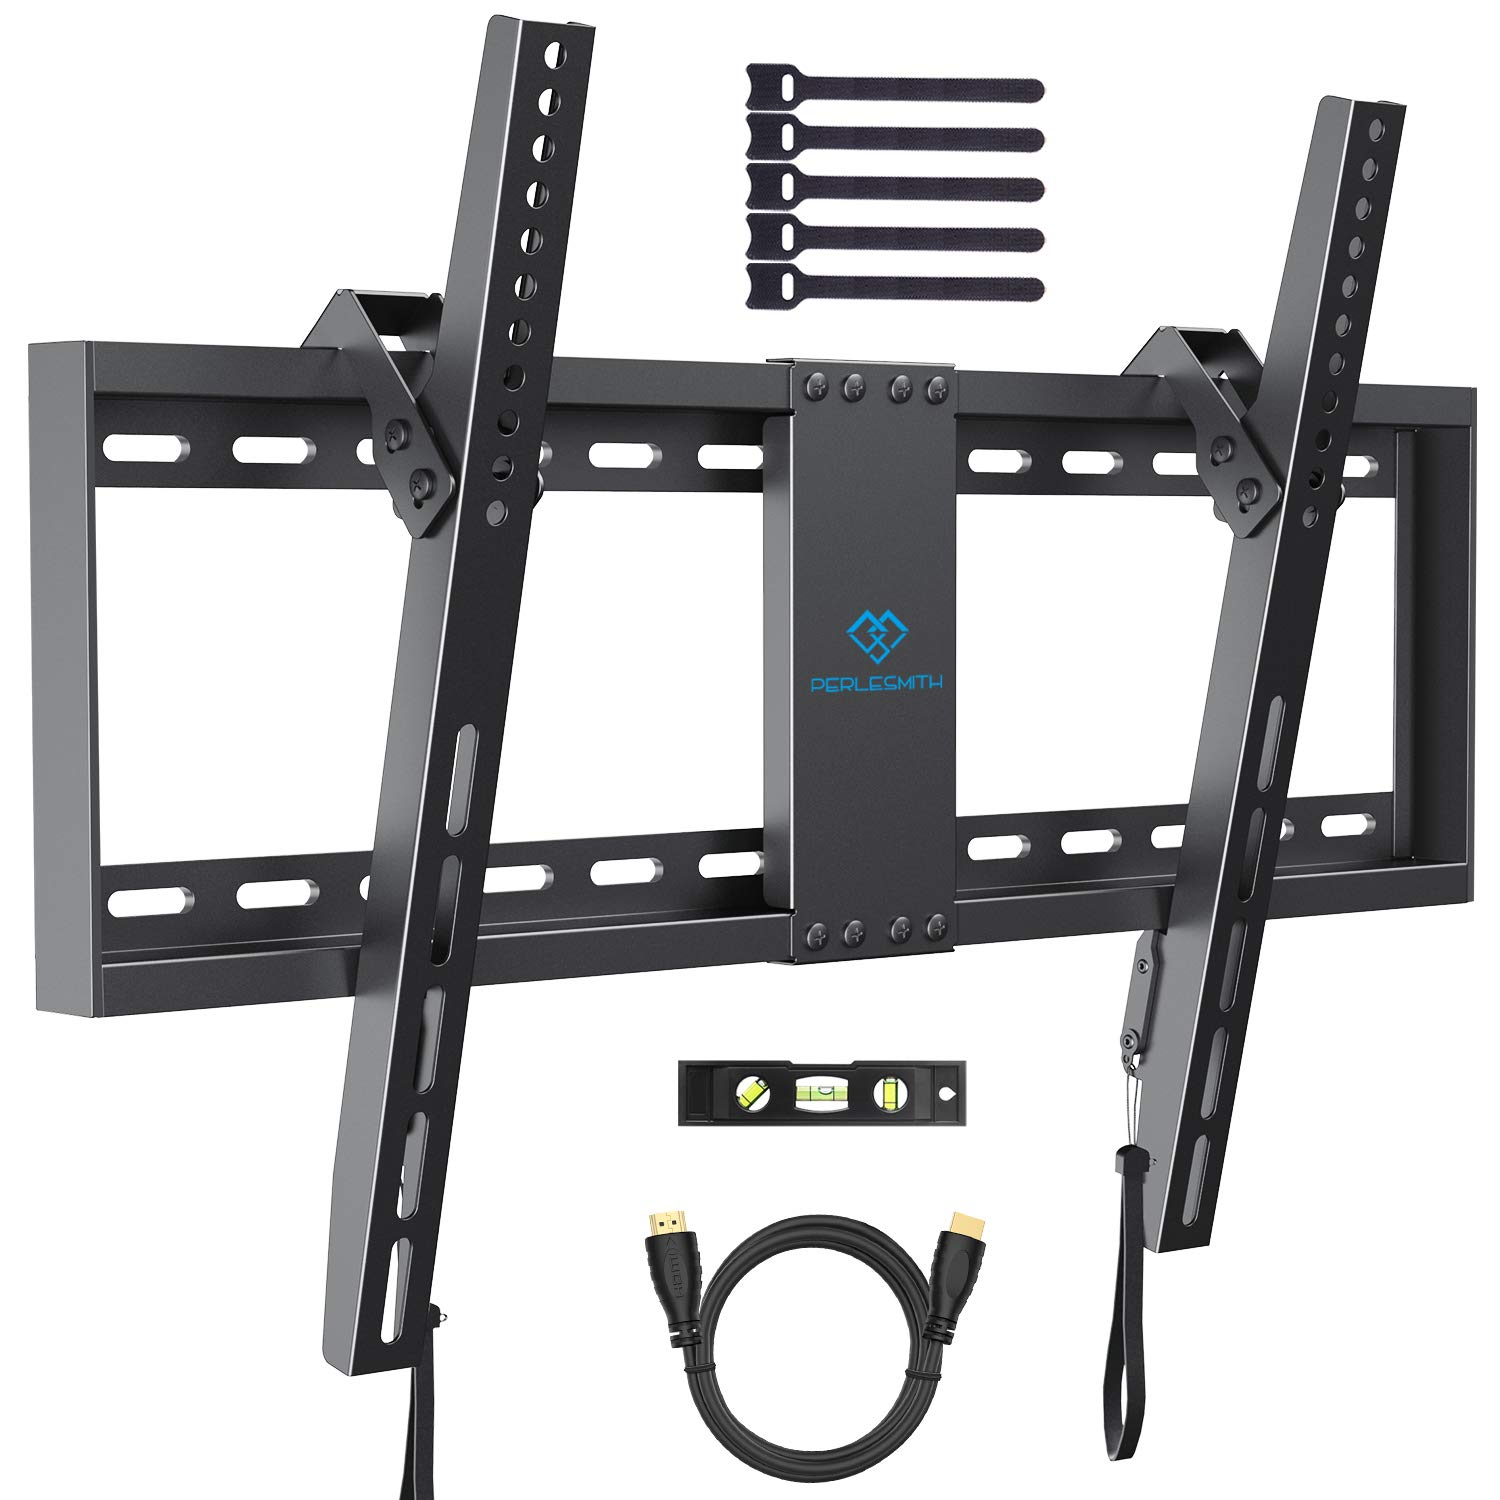 PERLESMITH Tilt Low Profile TV Wall Mount Bracket for Most 32-70 inch LED, LCD, OLED and Plasma Flat Screen TVs - Fits 16''- 24'' Wood Studs, Tilting TV Mount with VESA 600 x 400mm Holds up to132lbs by PERLESMITH